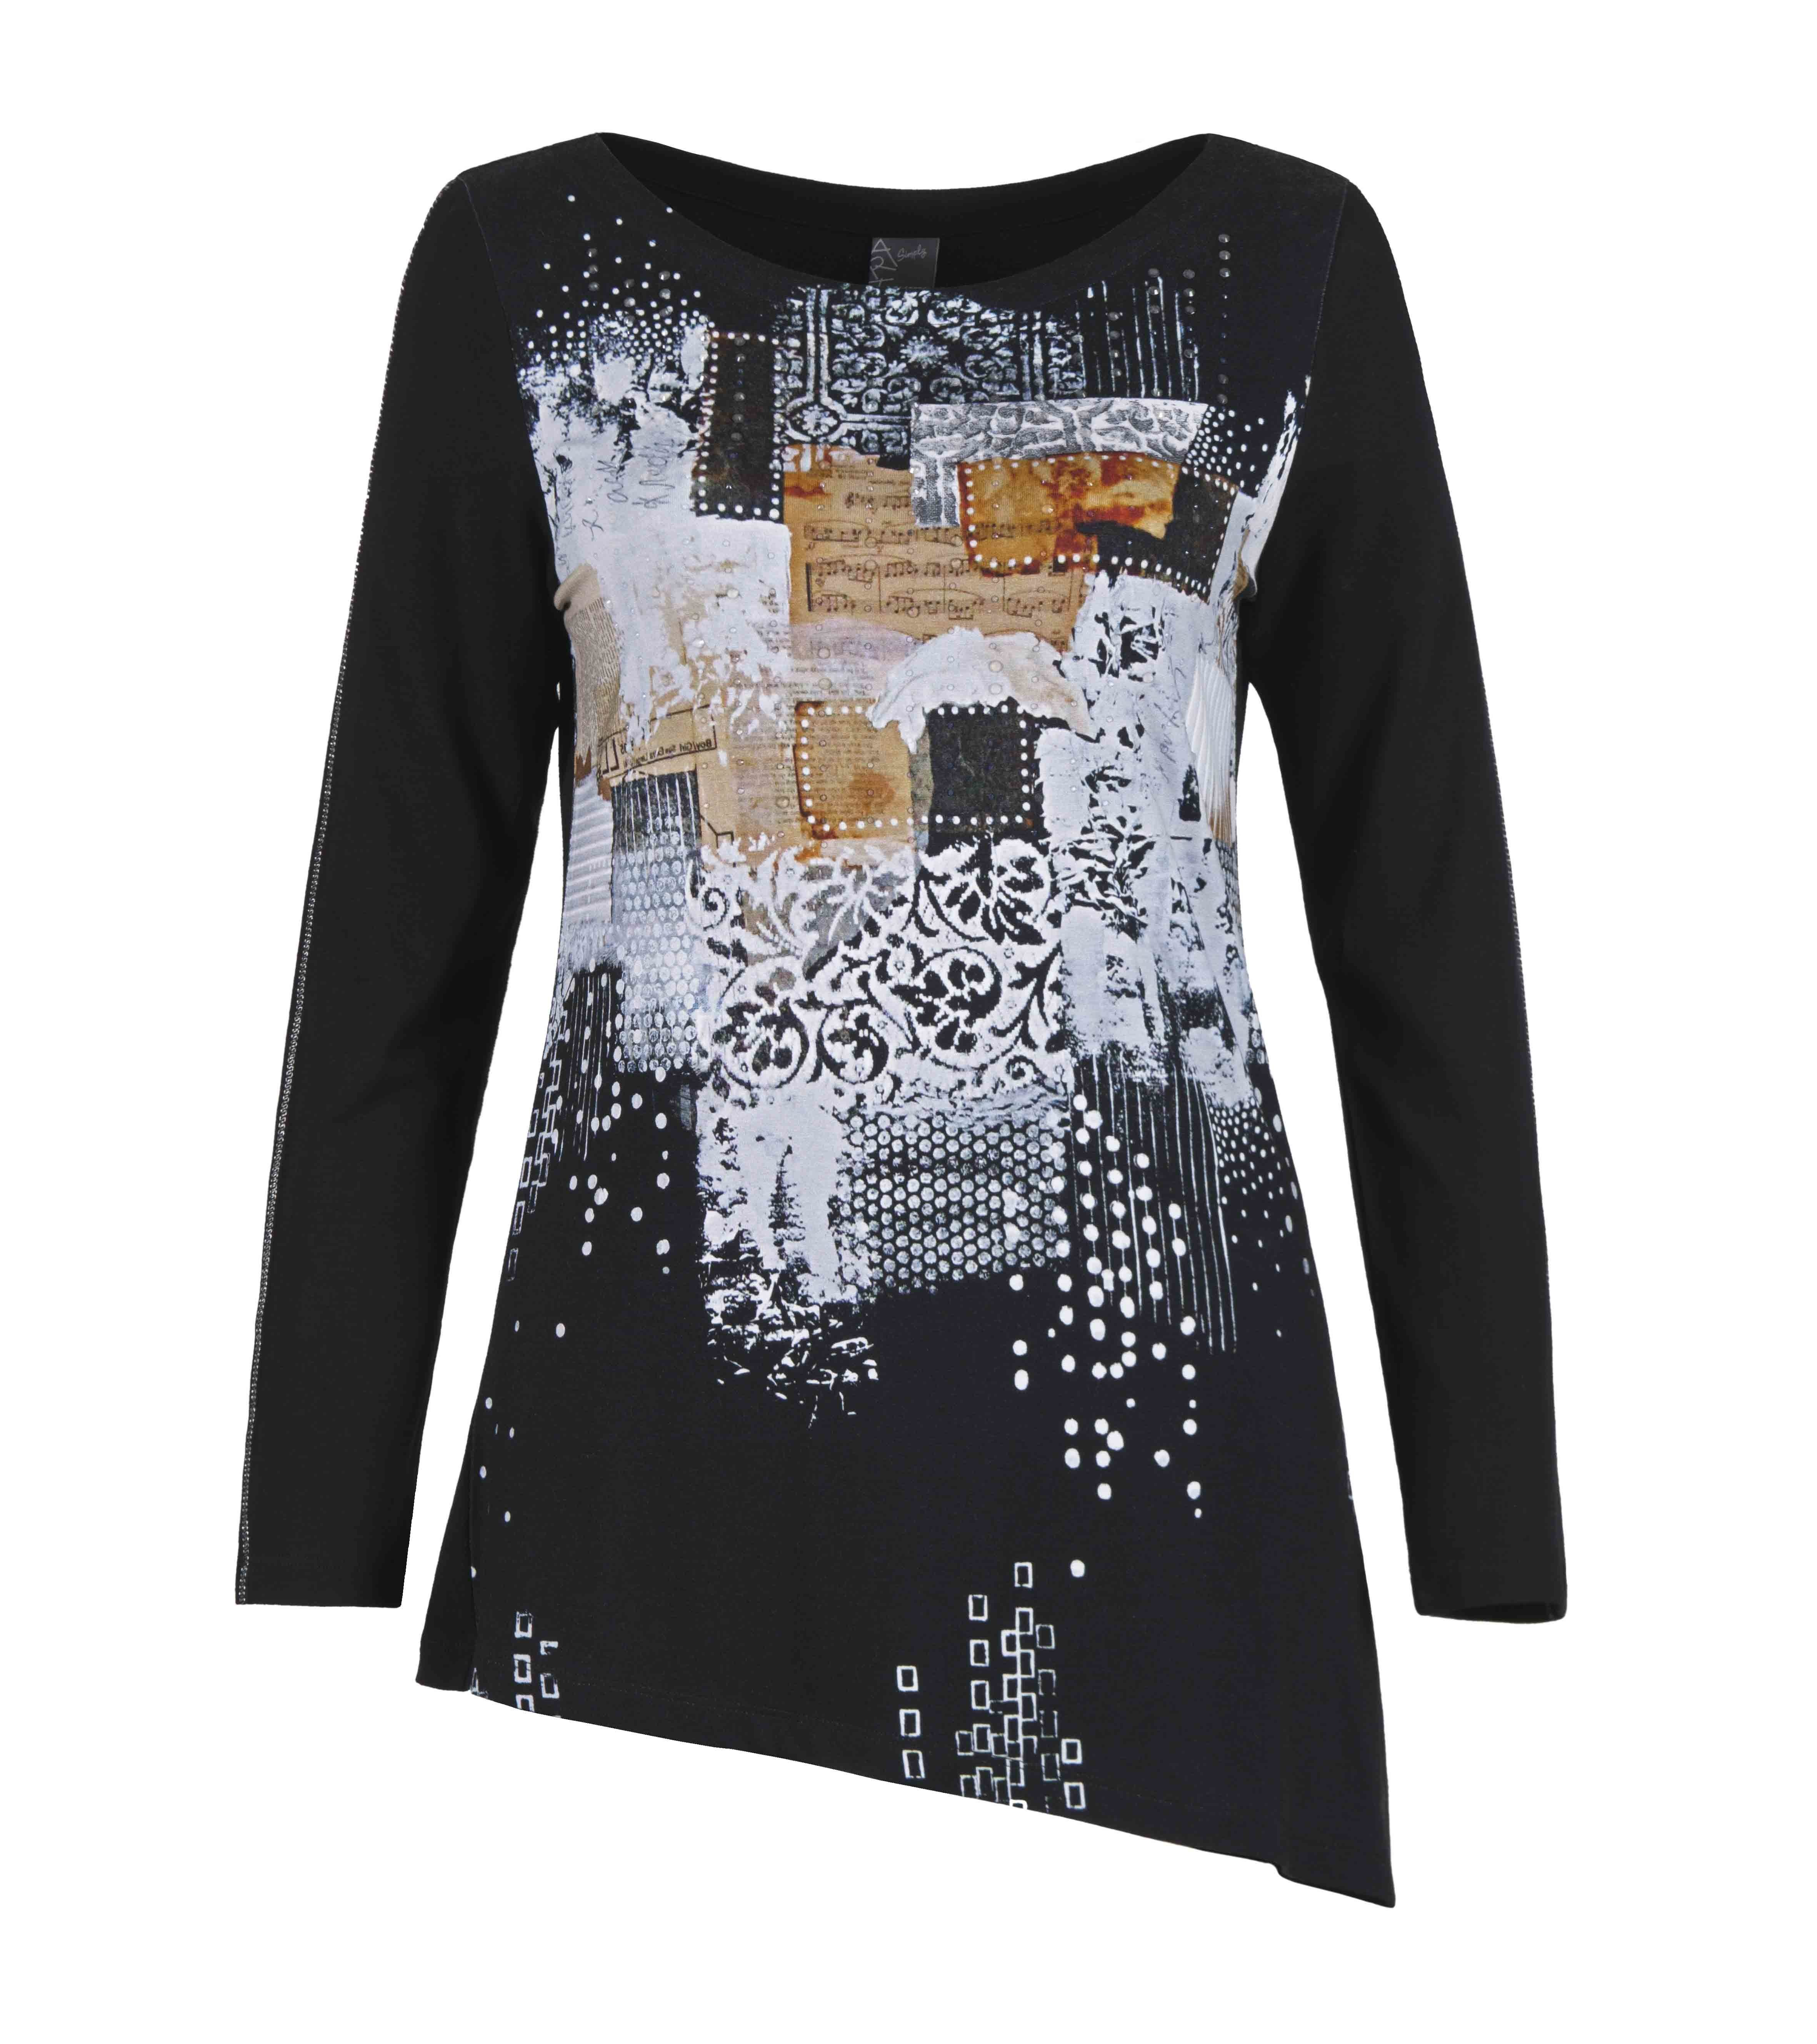 Simply Art Dolcezza: Explosion of Crystals Asymmetrical Abstract Art Tunic (2 Left!)